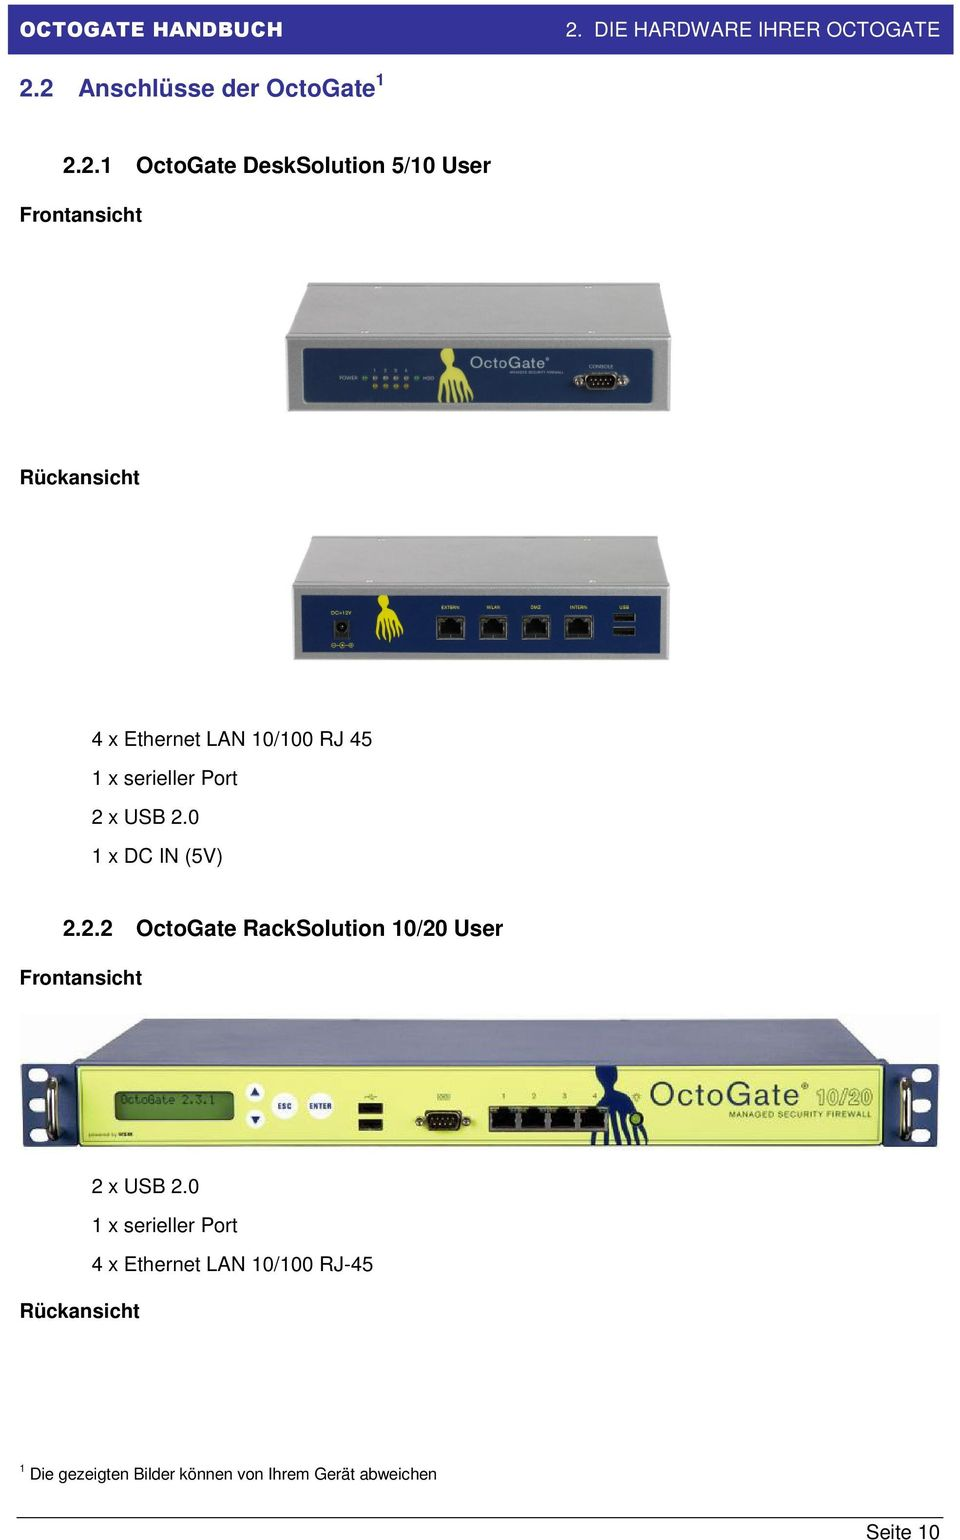 0 1 x DC IN (5V) 2.2.2 OctoGate RackSolution 10/20 User Frontansicht 2 x USB 2.